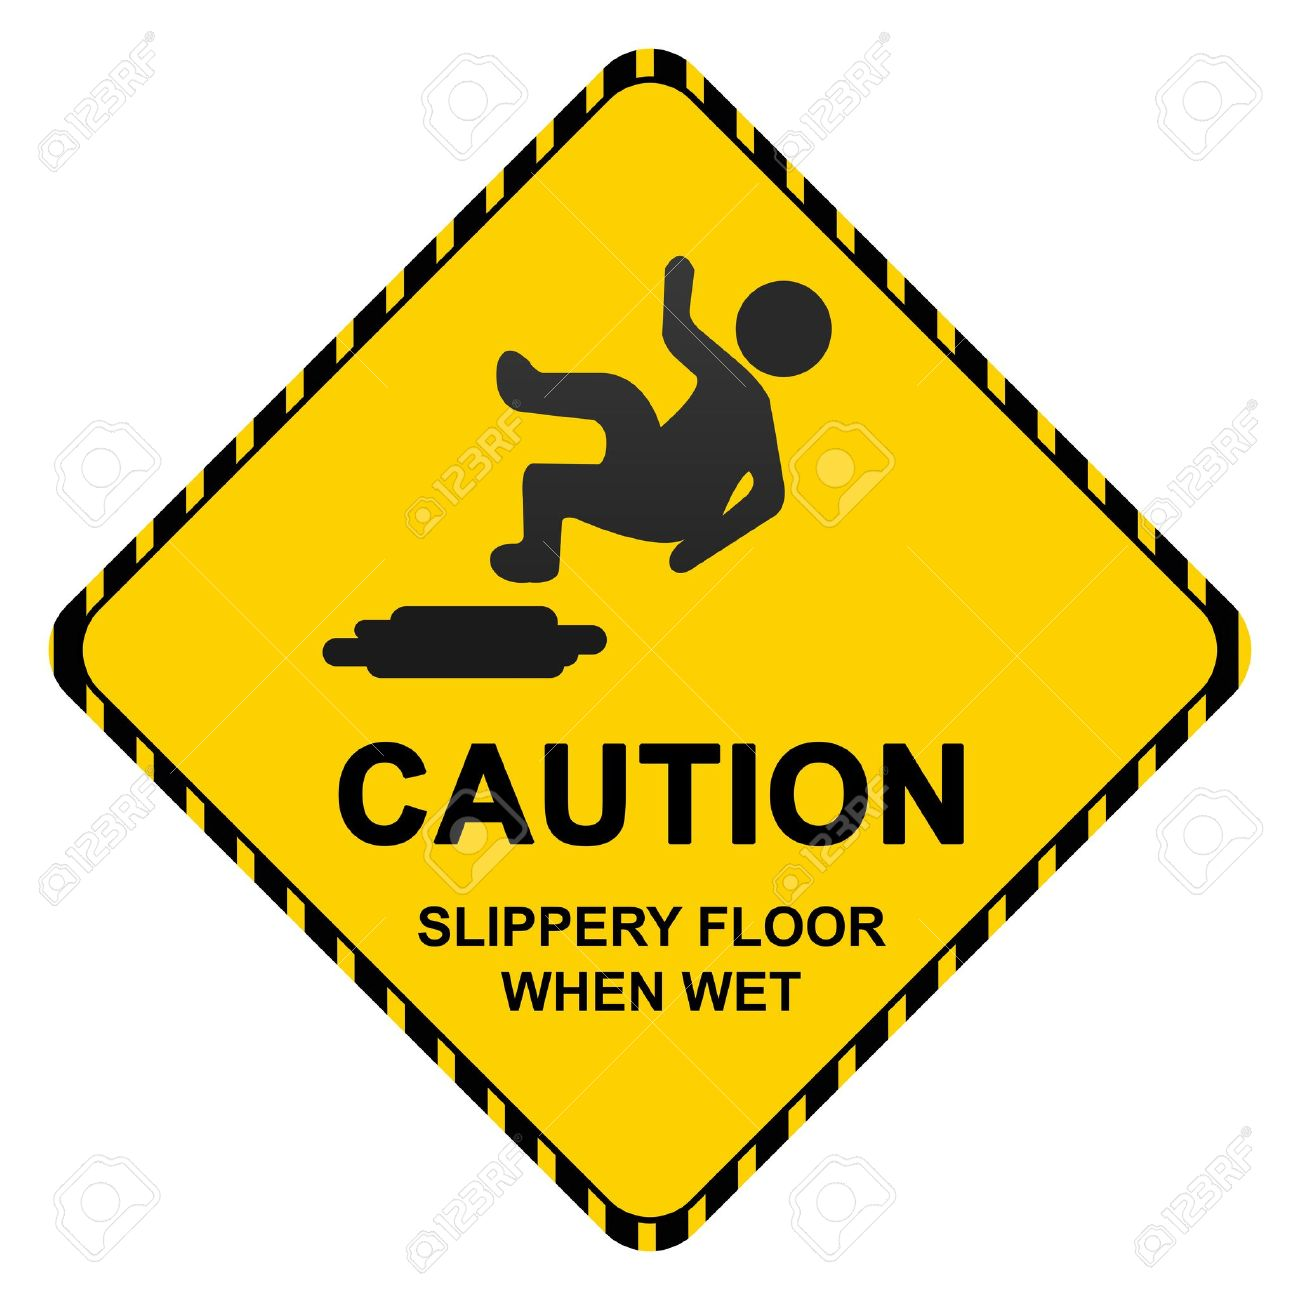 Caution Slippery Floor When Wet Sign Isolated On White Background.